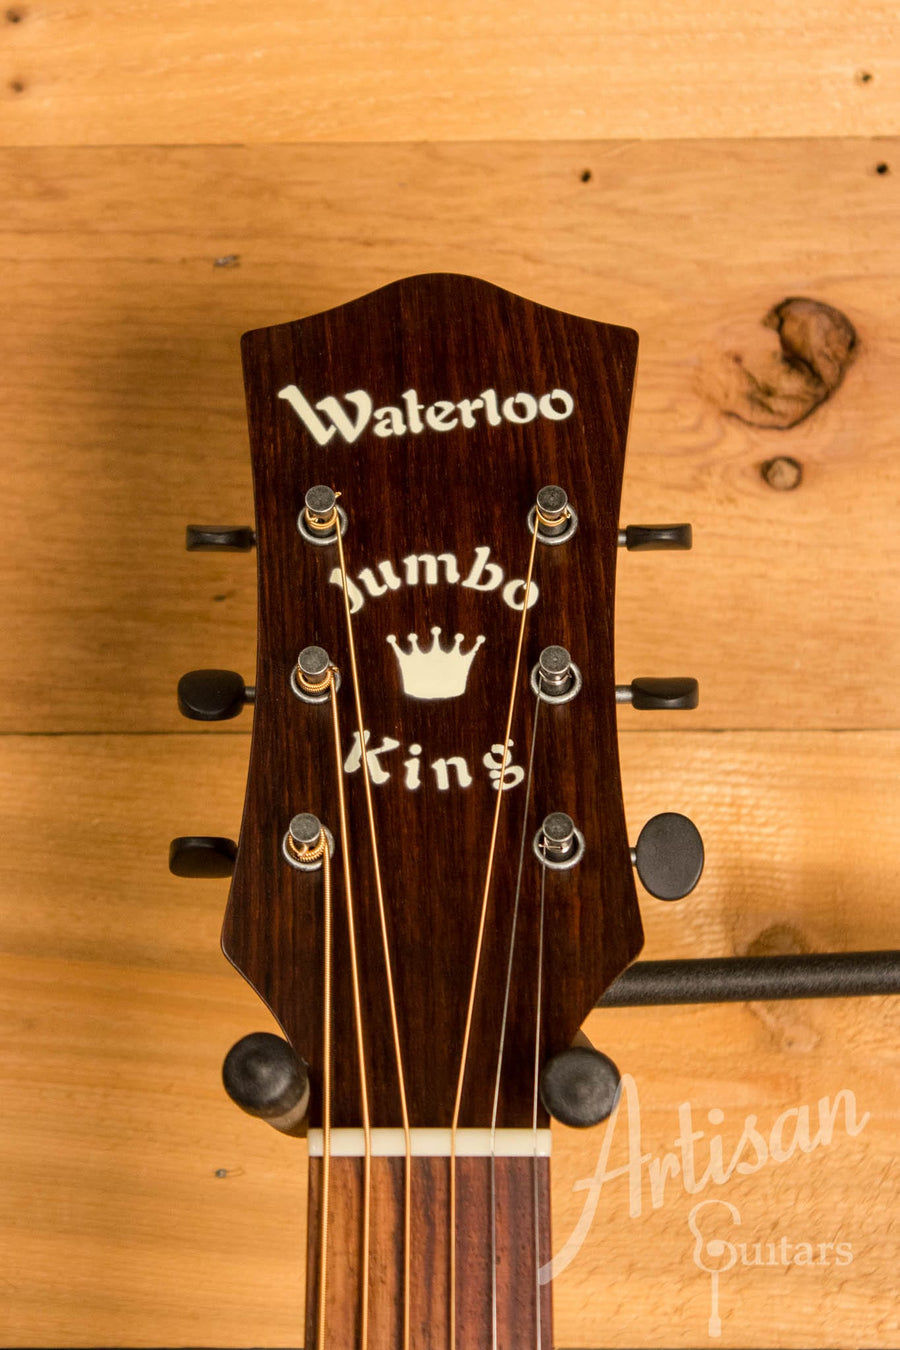 Waterloo WL-JK  X Braced Guitar Sunburst with Truss Rod  ID-10357 - Artisan Guitars